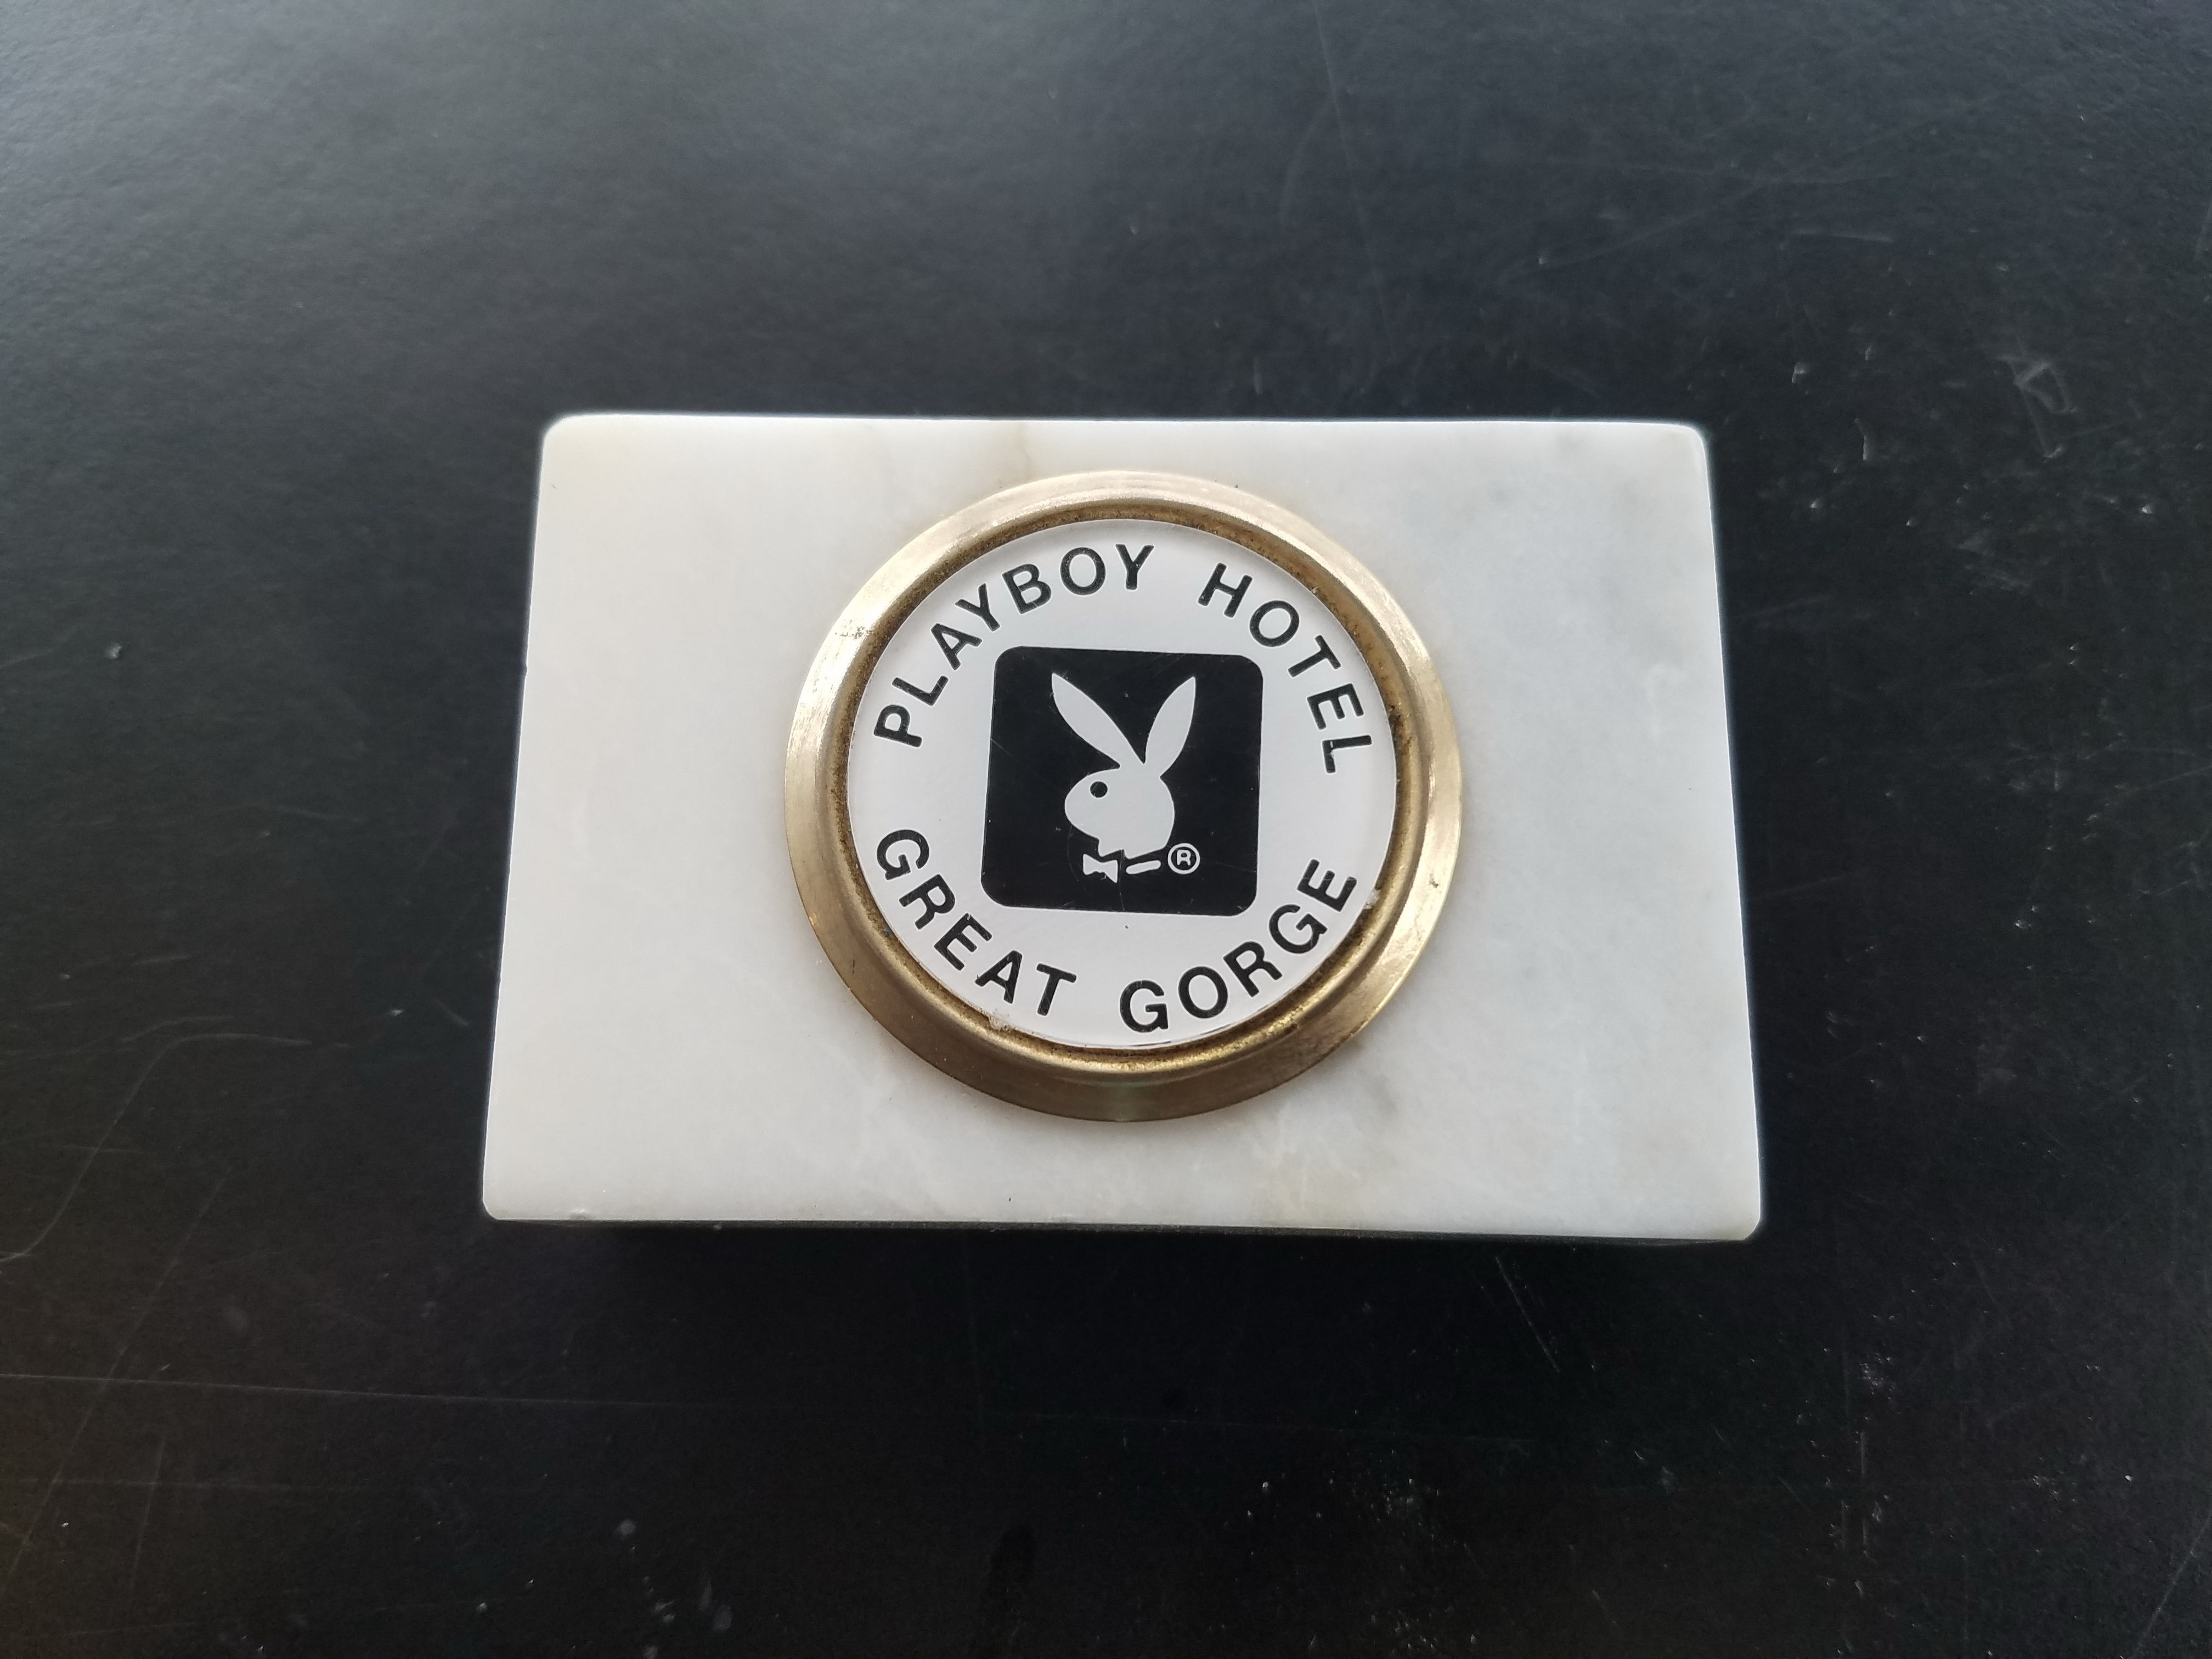 Playboy Club Hotel Great Gorge Paper Weight